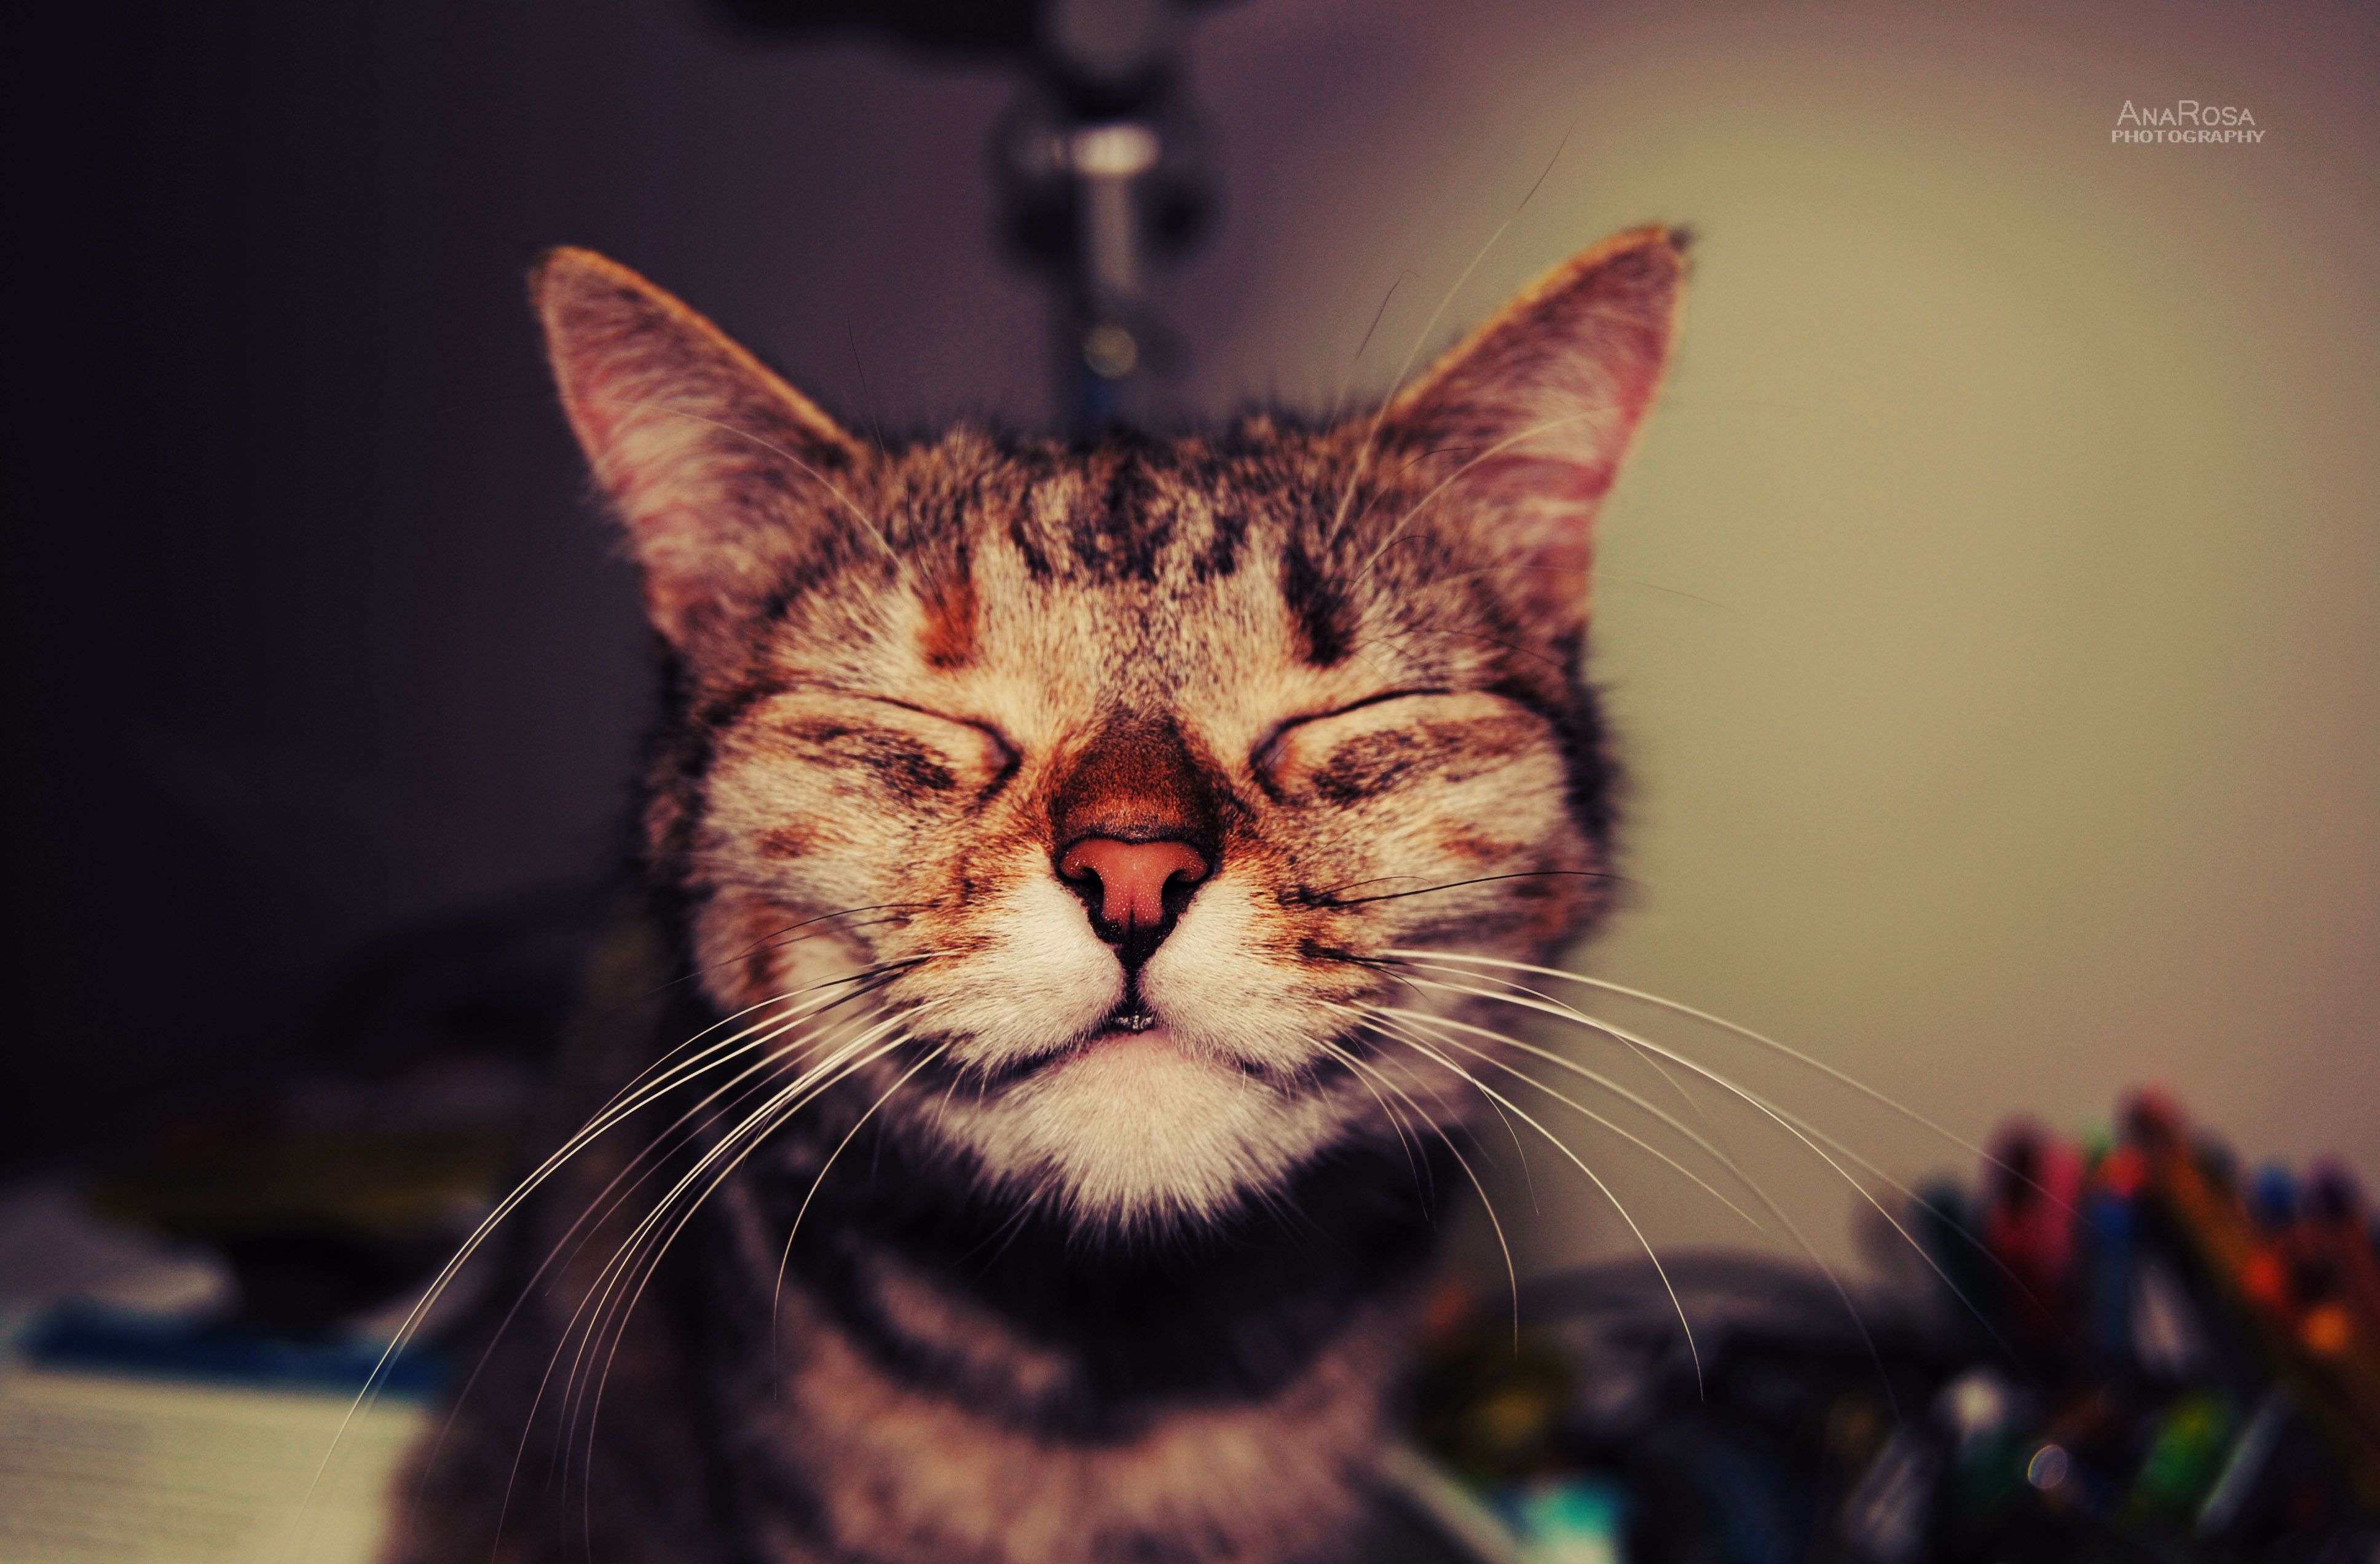 happy_cat_is_happy_by_anarosaphotography